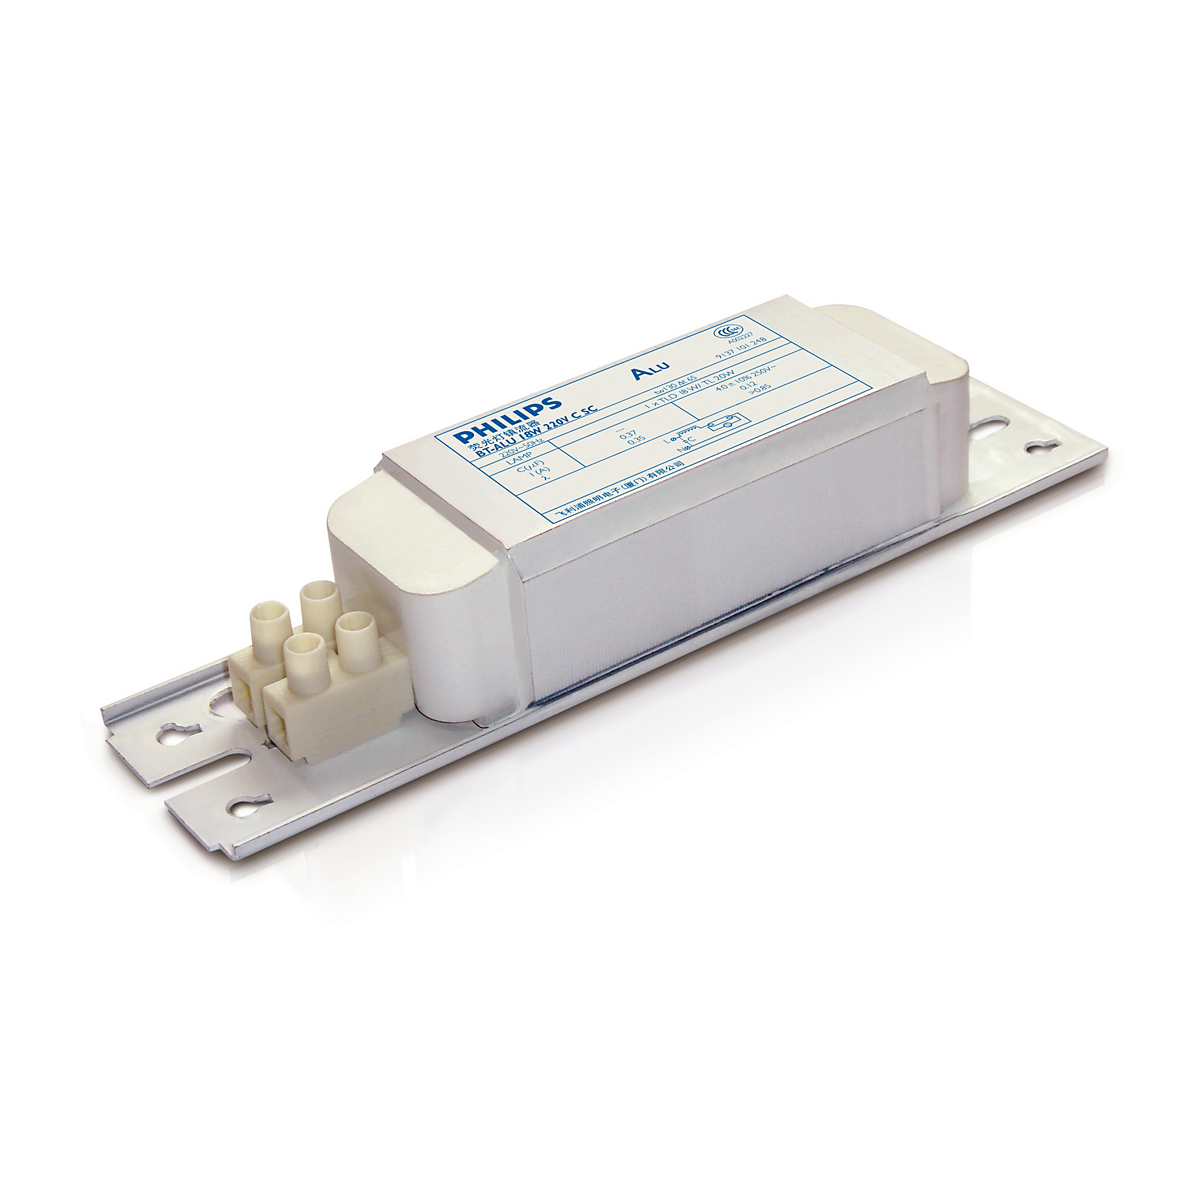 BPL EM ballasts for CFL, PL-T, PL-S and PL-C lamps